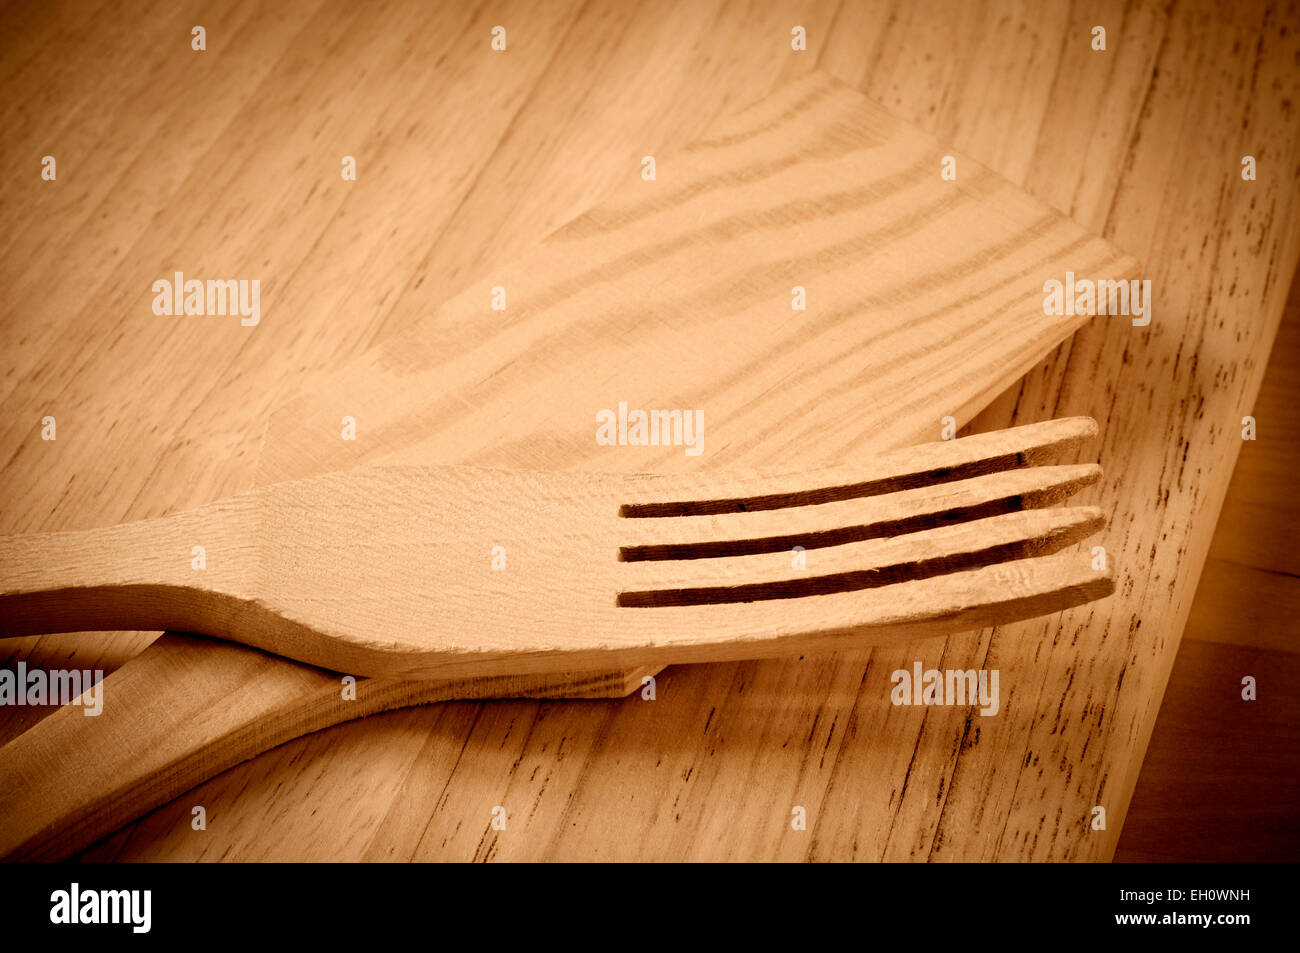 some wooden kitchen utensils on a wooden chopping board Stock Photo